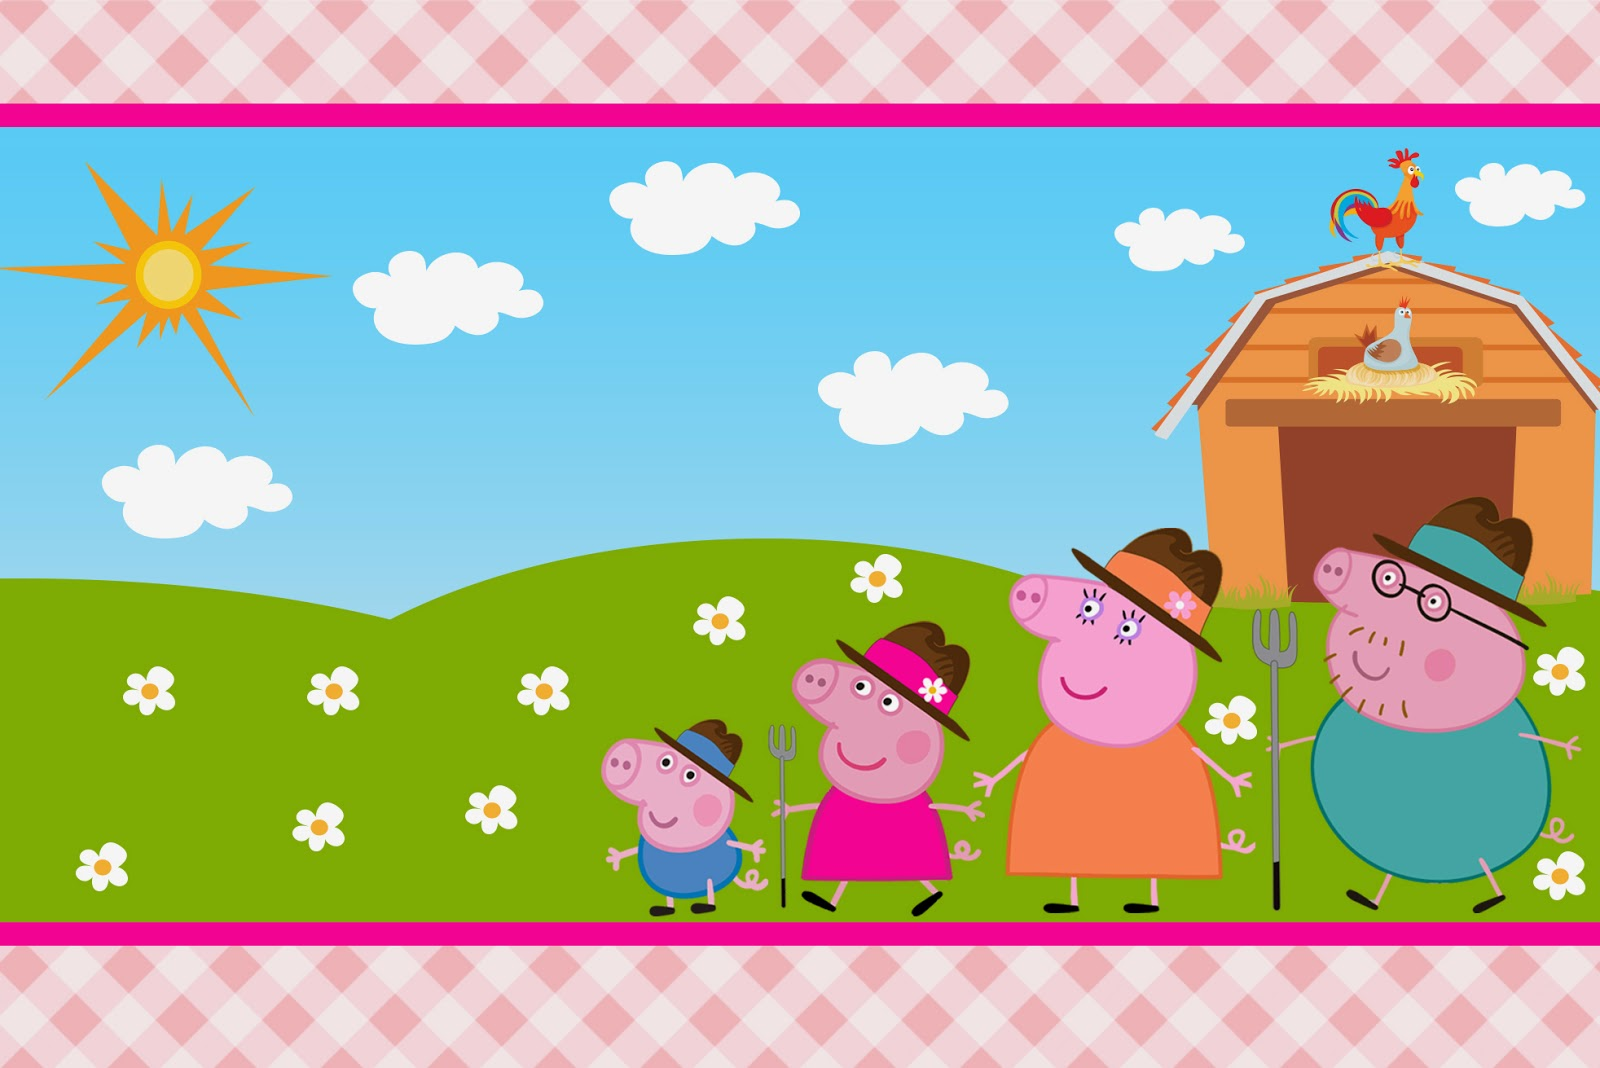 Peppa Pig at the Farm: Free Printable Invitations. | Is it for ...